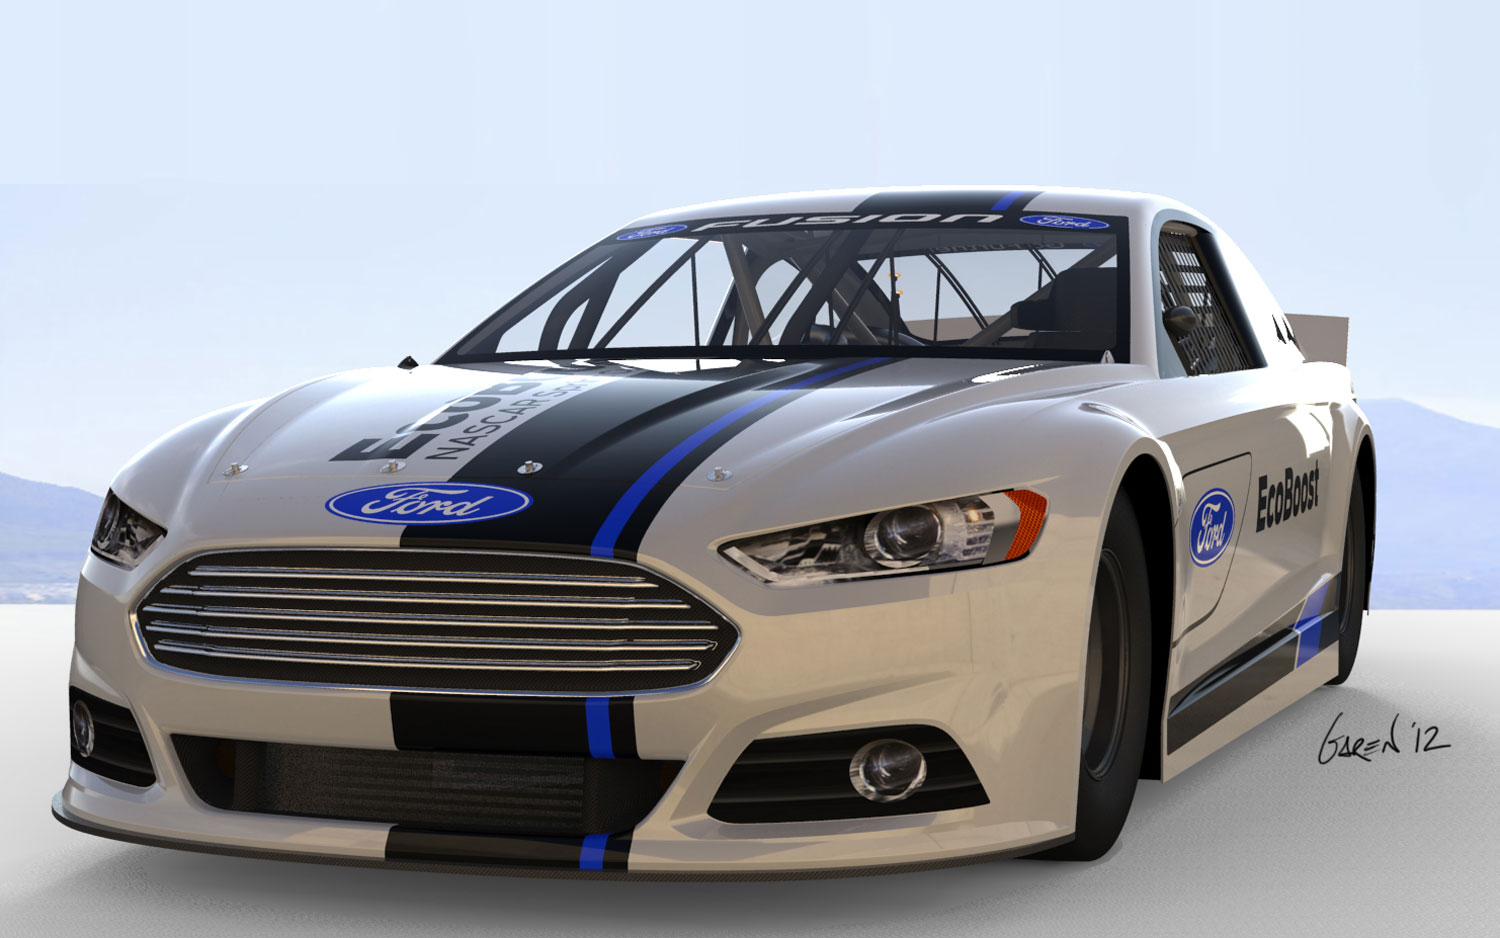 2013 Ford Fusion NASCAR Facelift Front View1